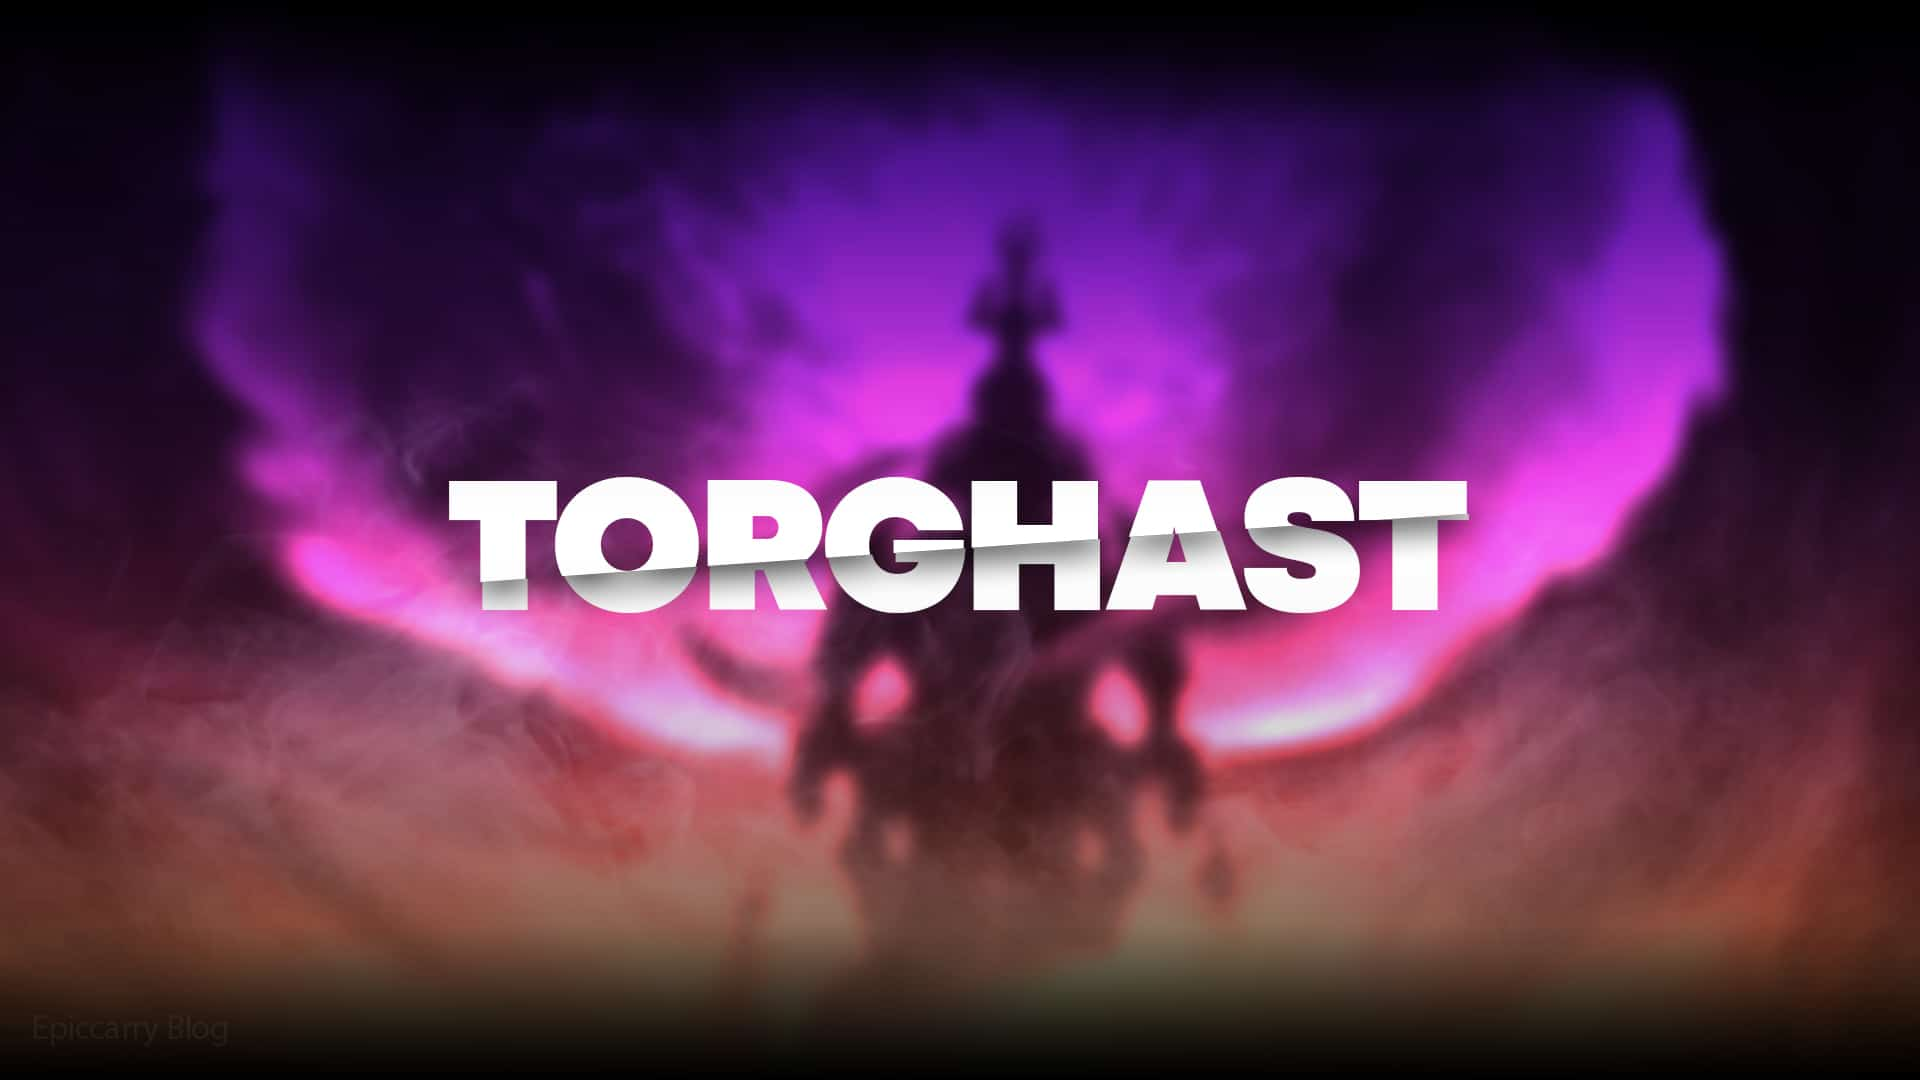 Torghast Bosses: How To Beat Them - Epiccarry